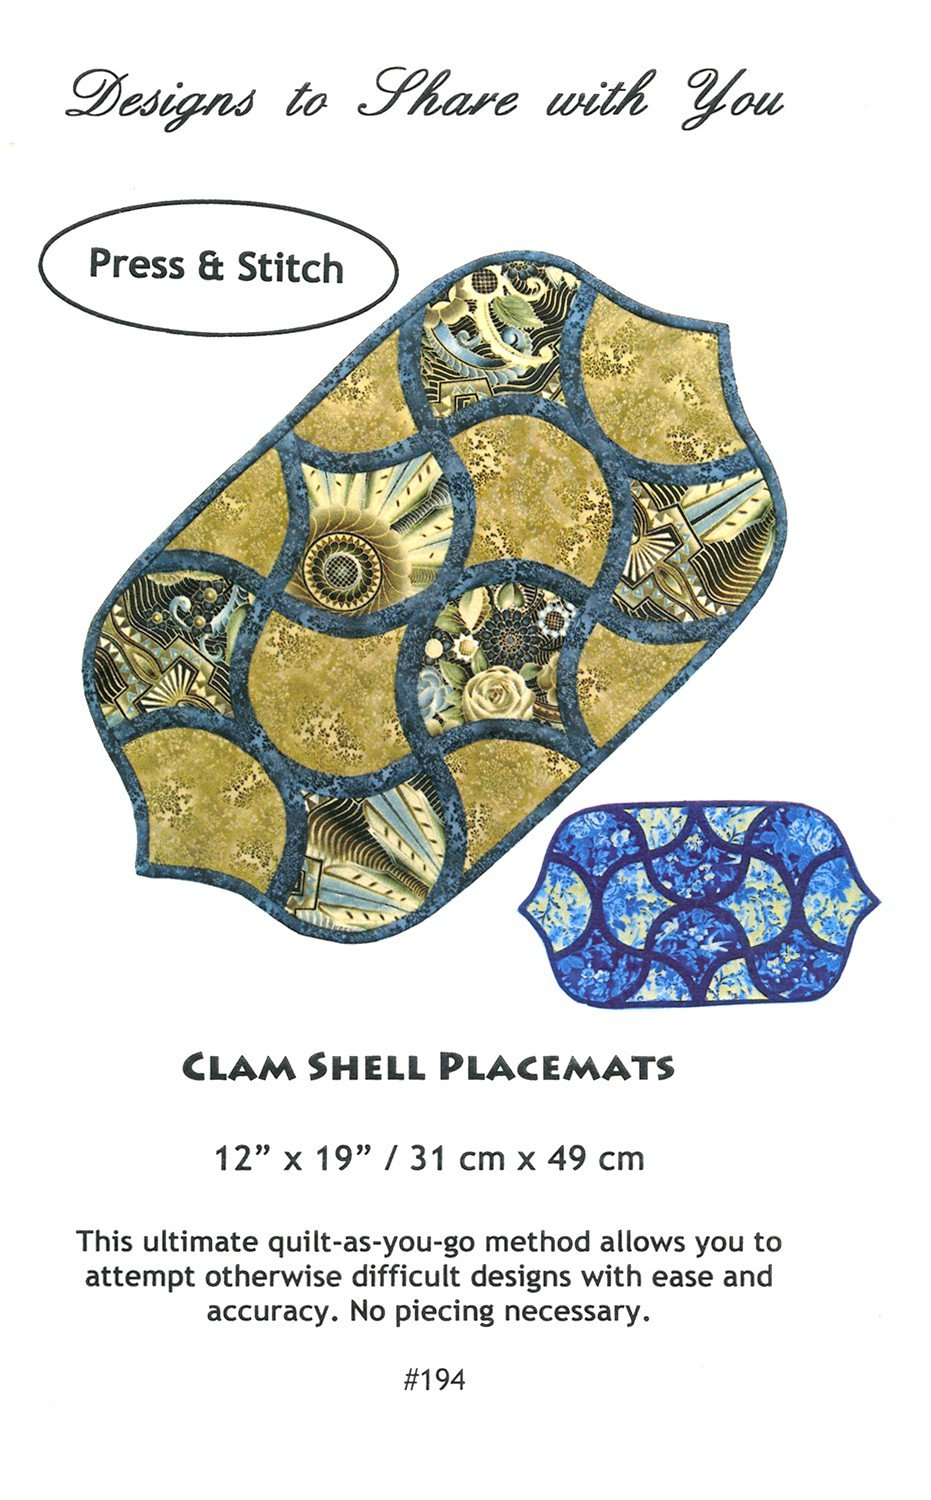 Clam Shell Placemats DSY194 Patten